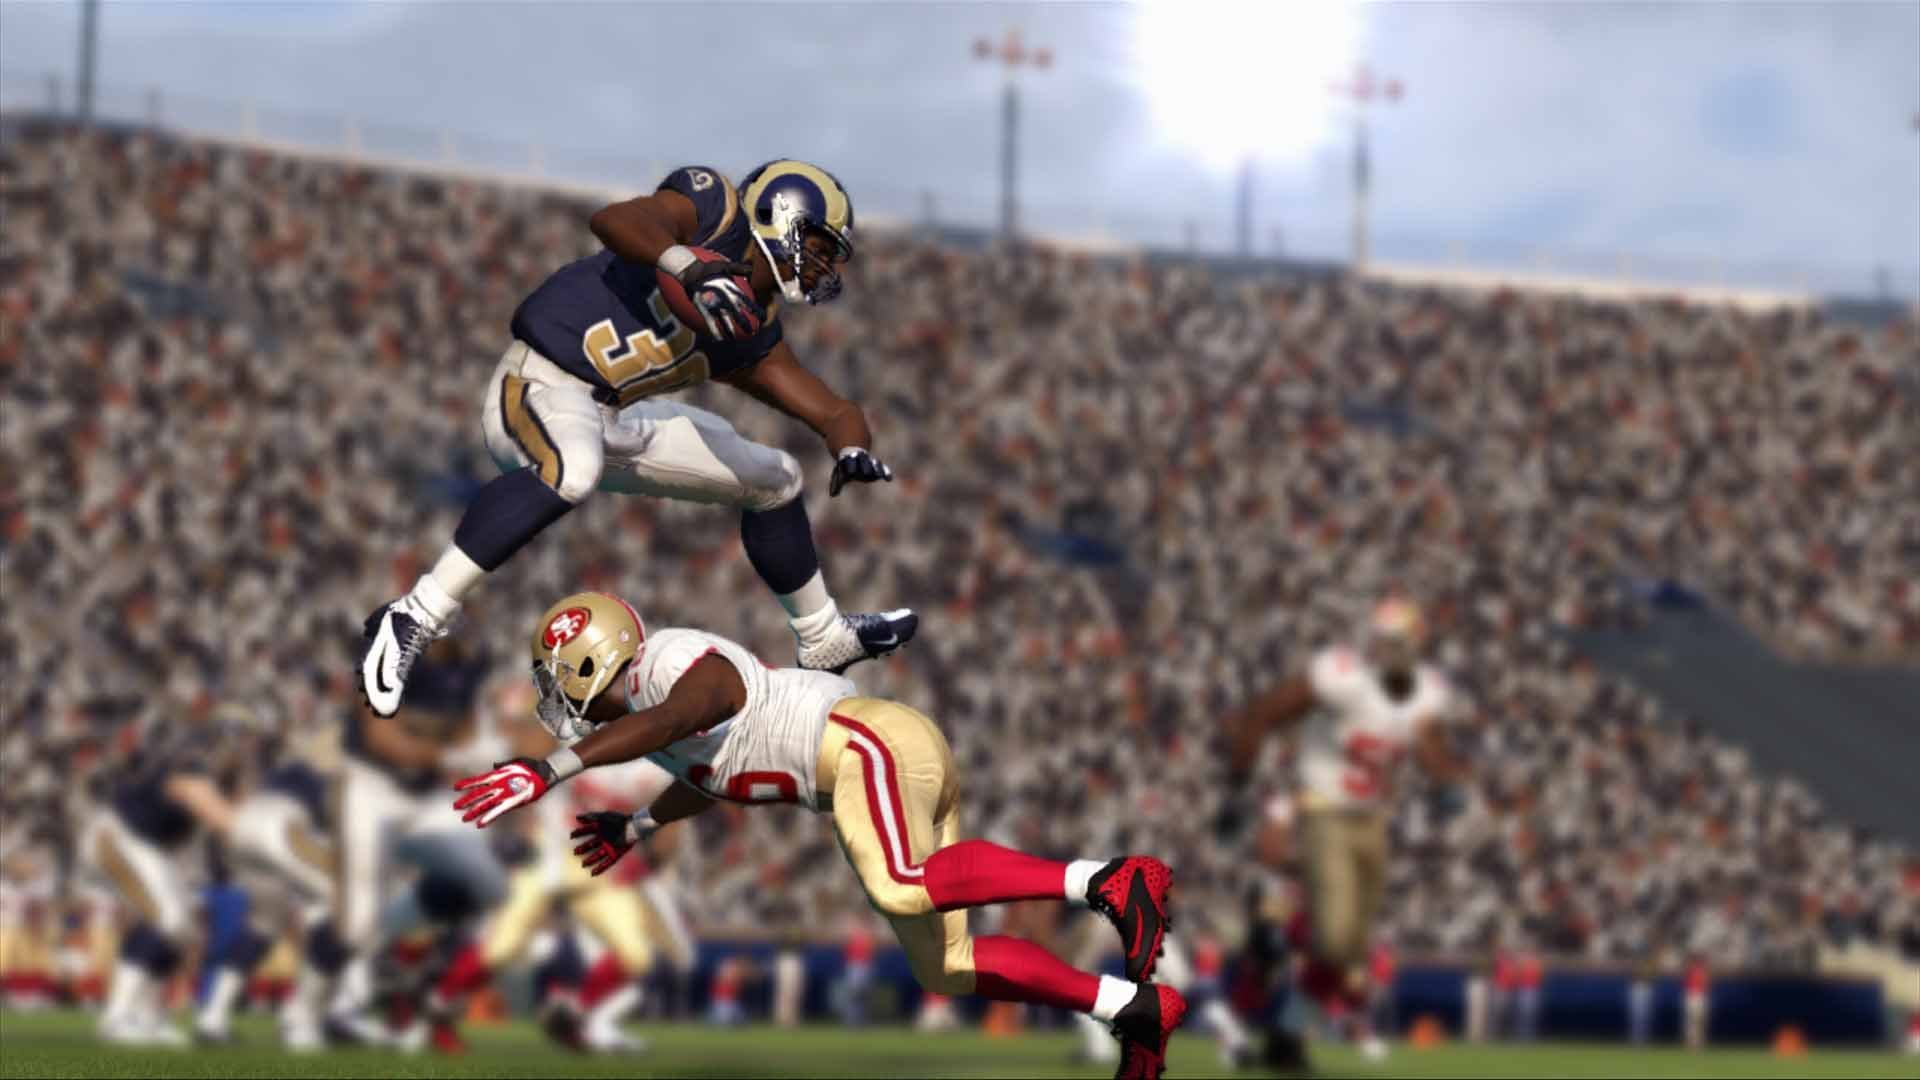 Madden NFL 17 - Standard Edition - PlayStation 4 by Electronic Arts (Image #3)